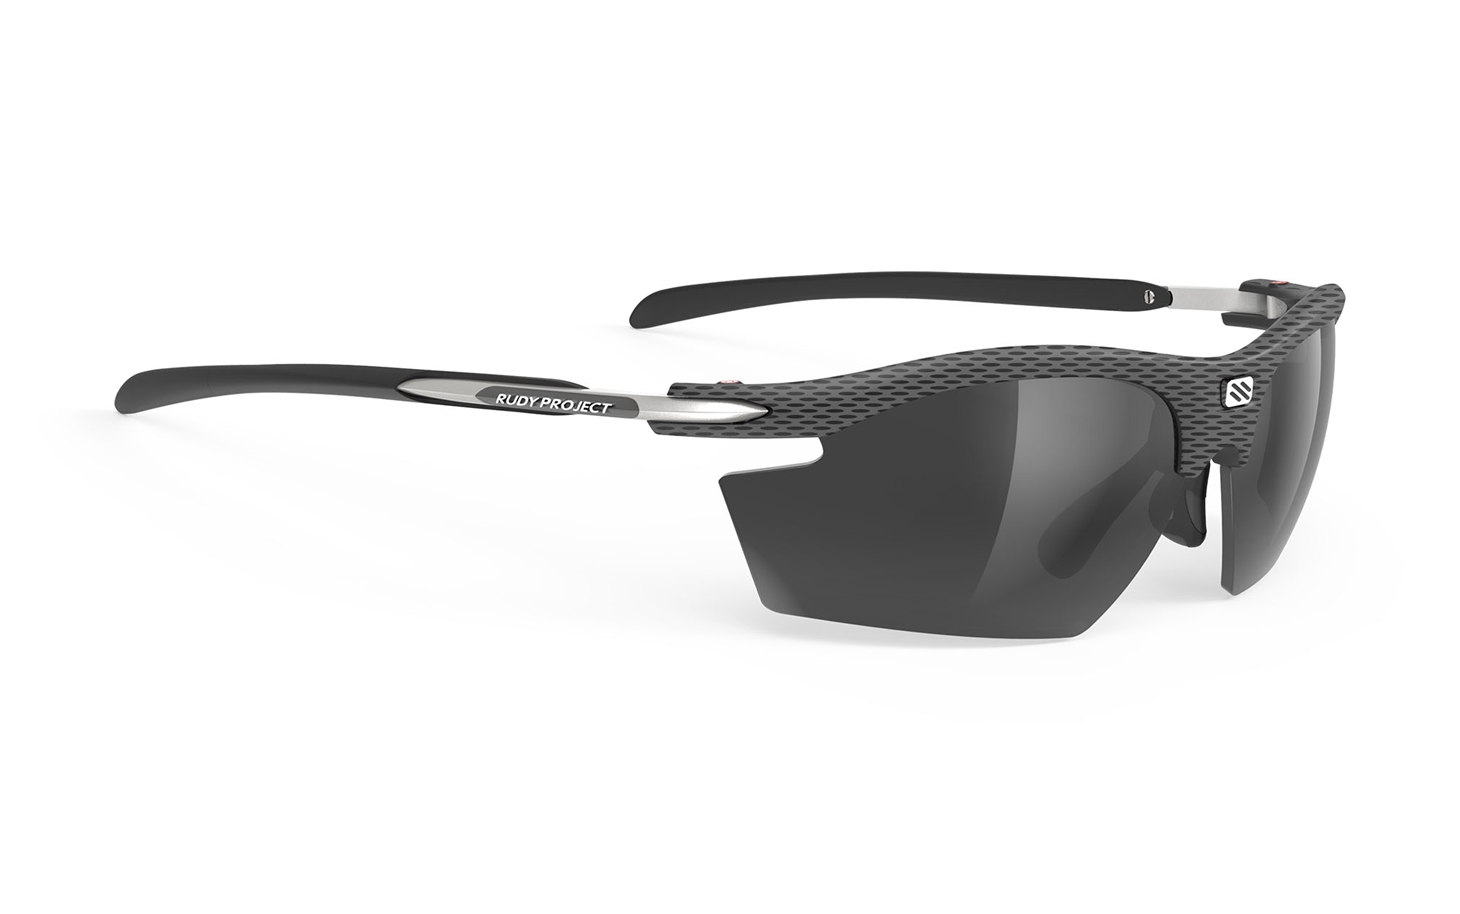 7a806581138 Glasses and sports helmets - Rudy Project